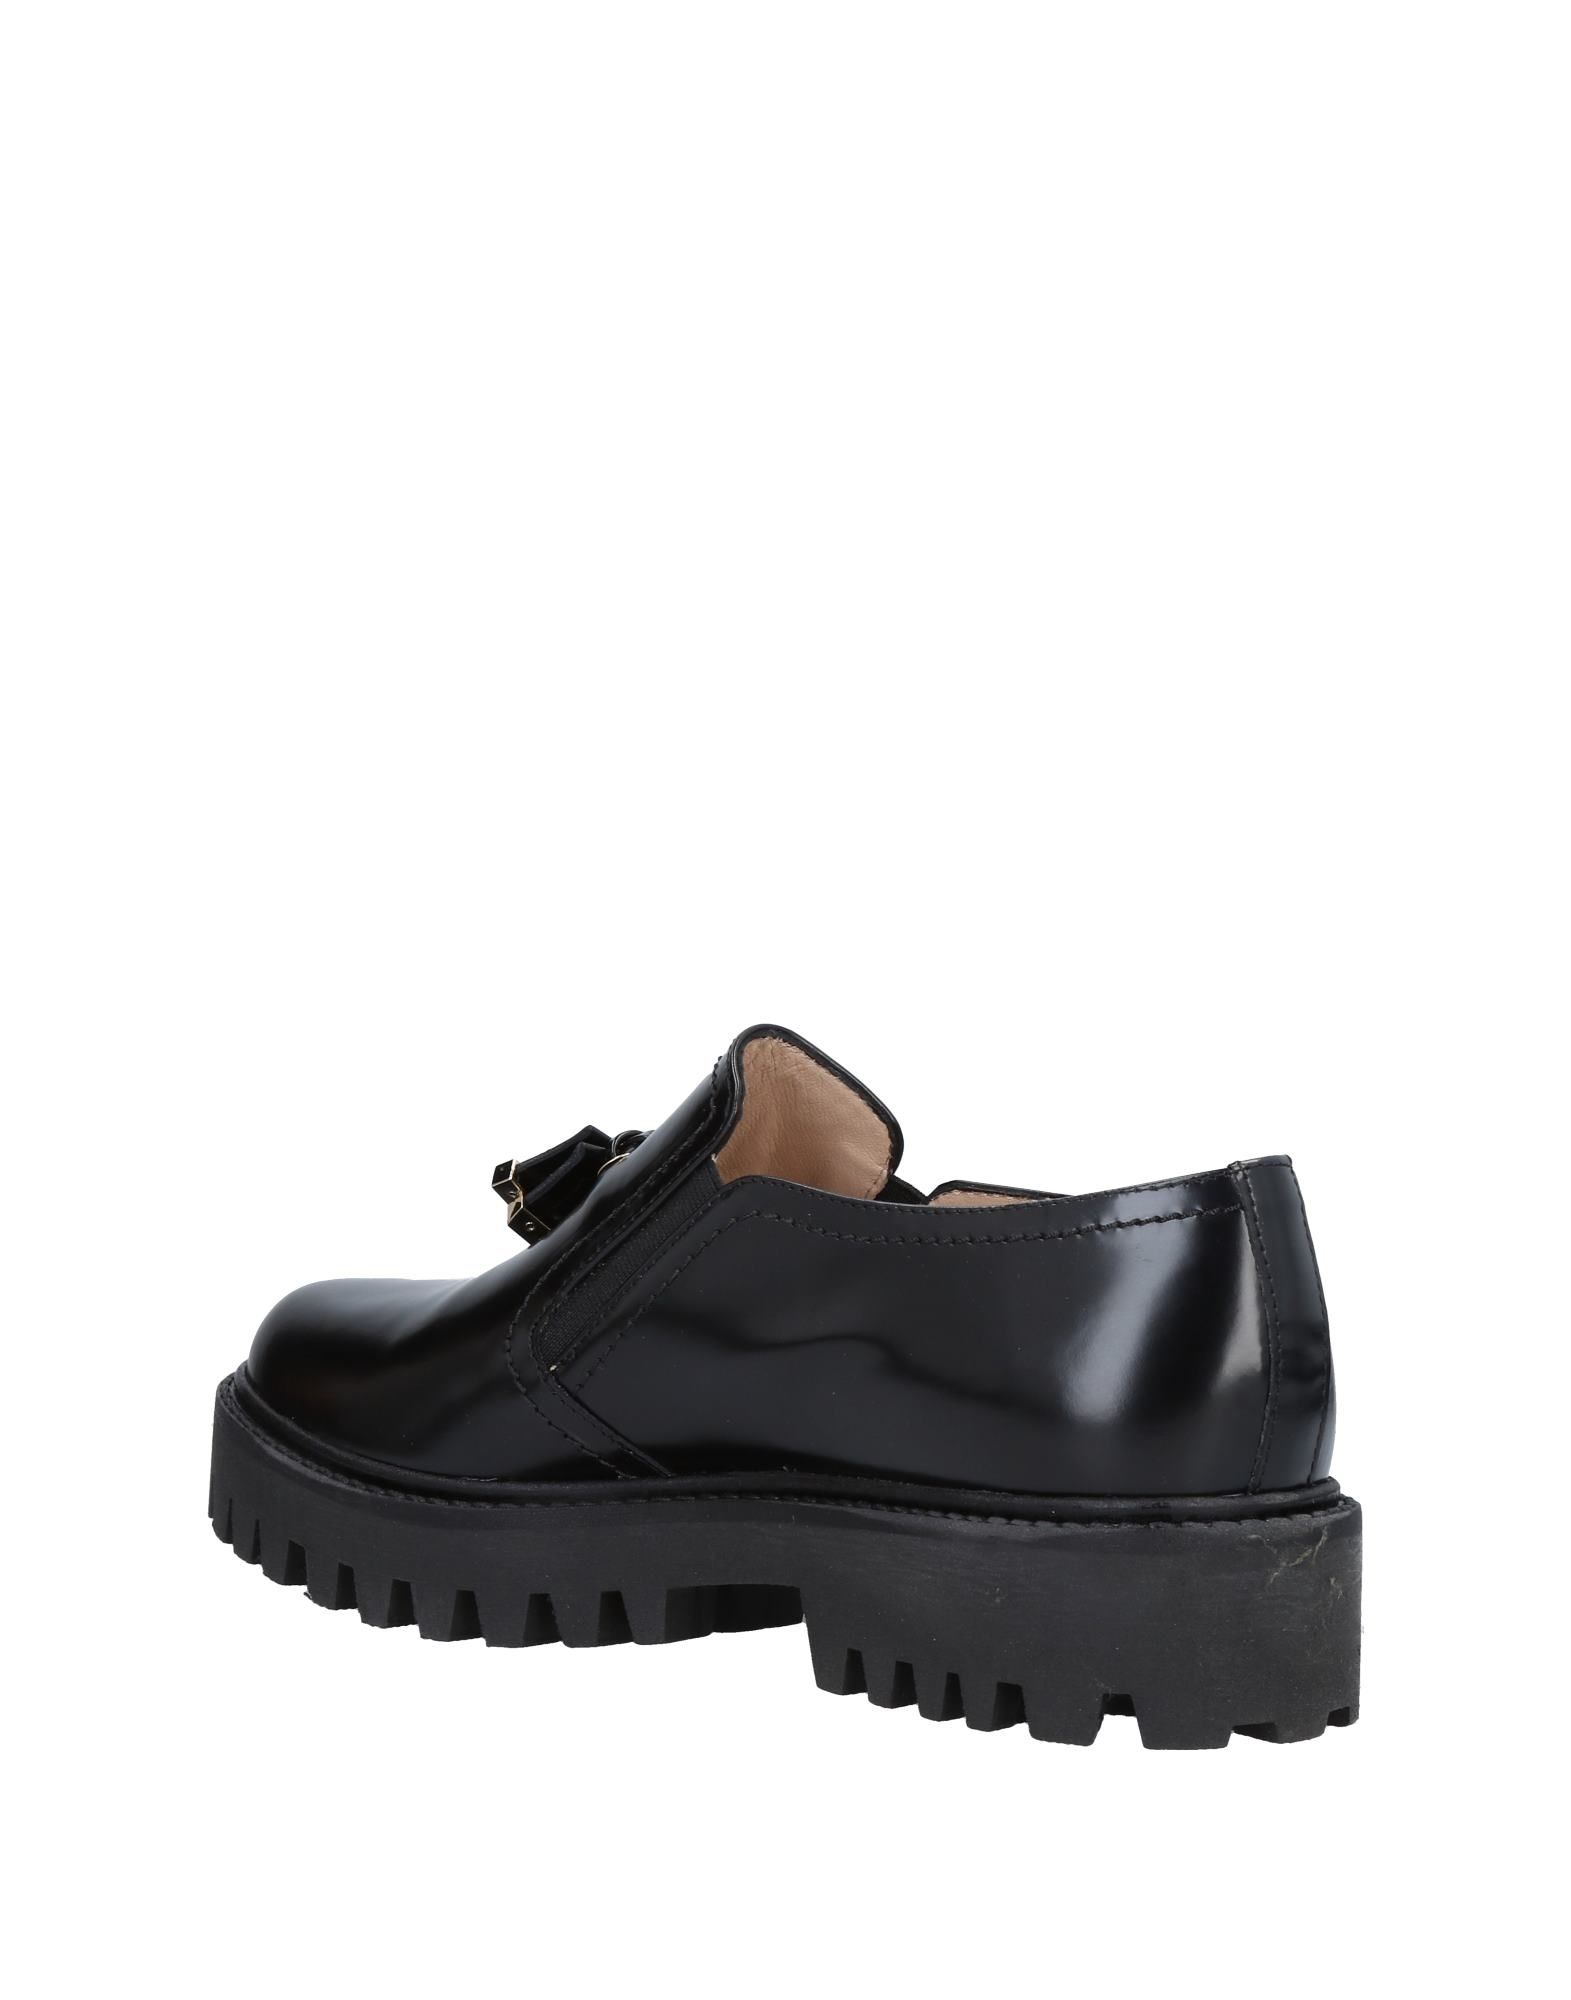 Stilvolle Mokassins billige Schuhe Norma J.Baker Mokassins Stilvolle Damen  11476958DO ae1219